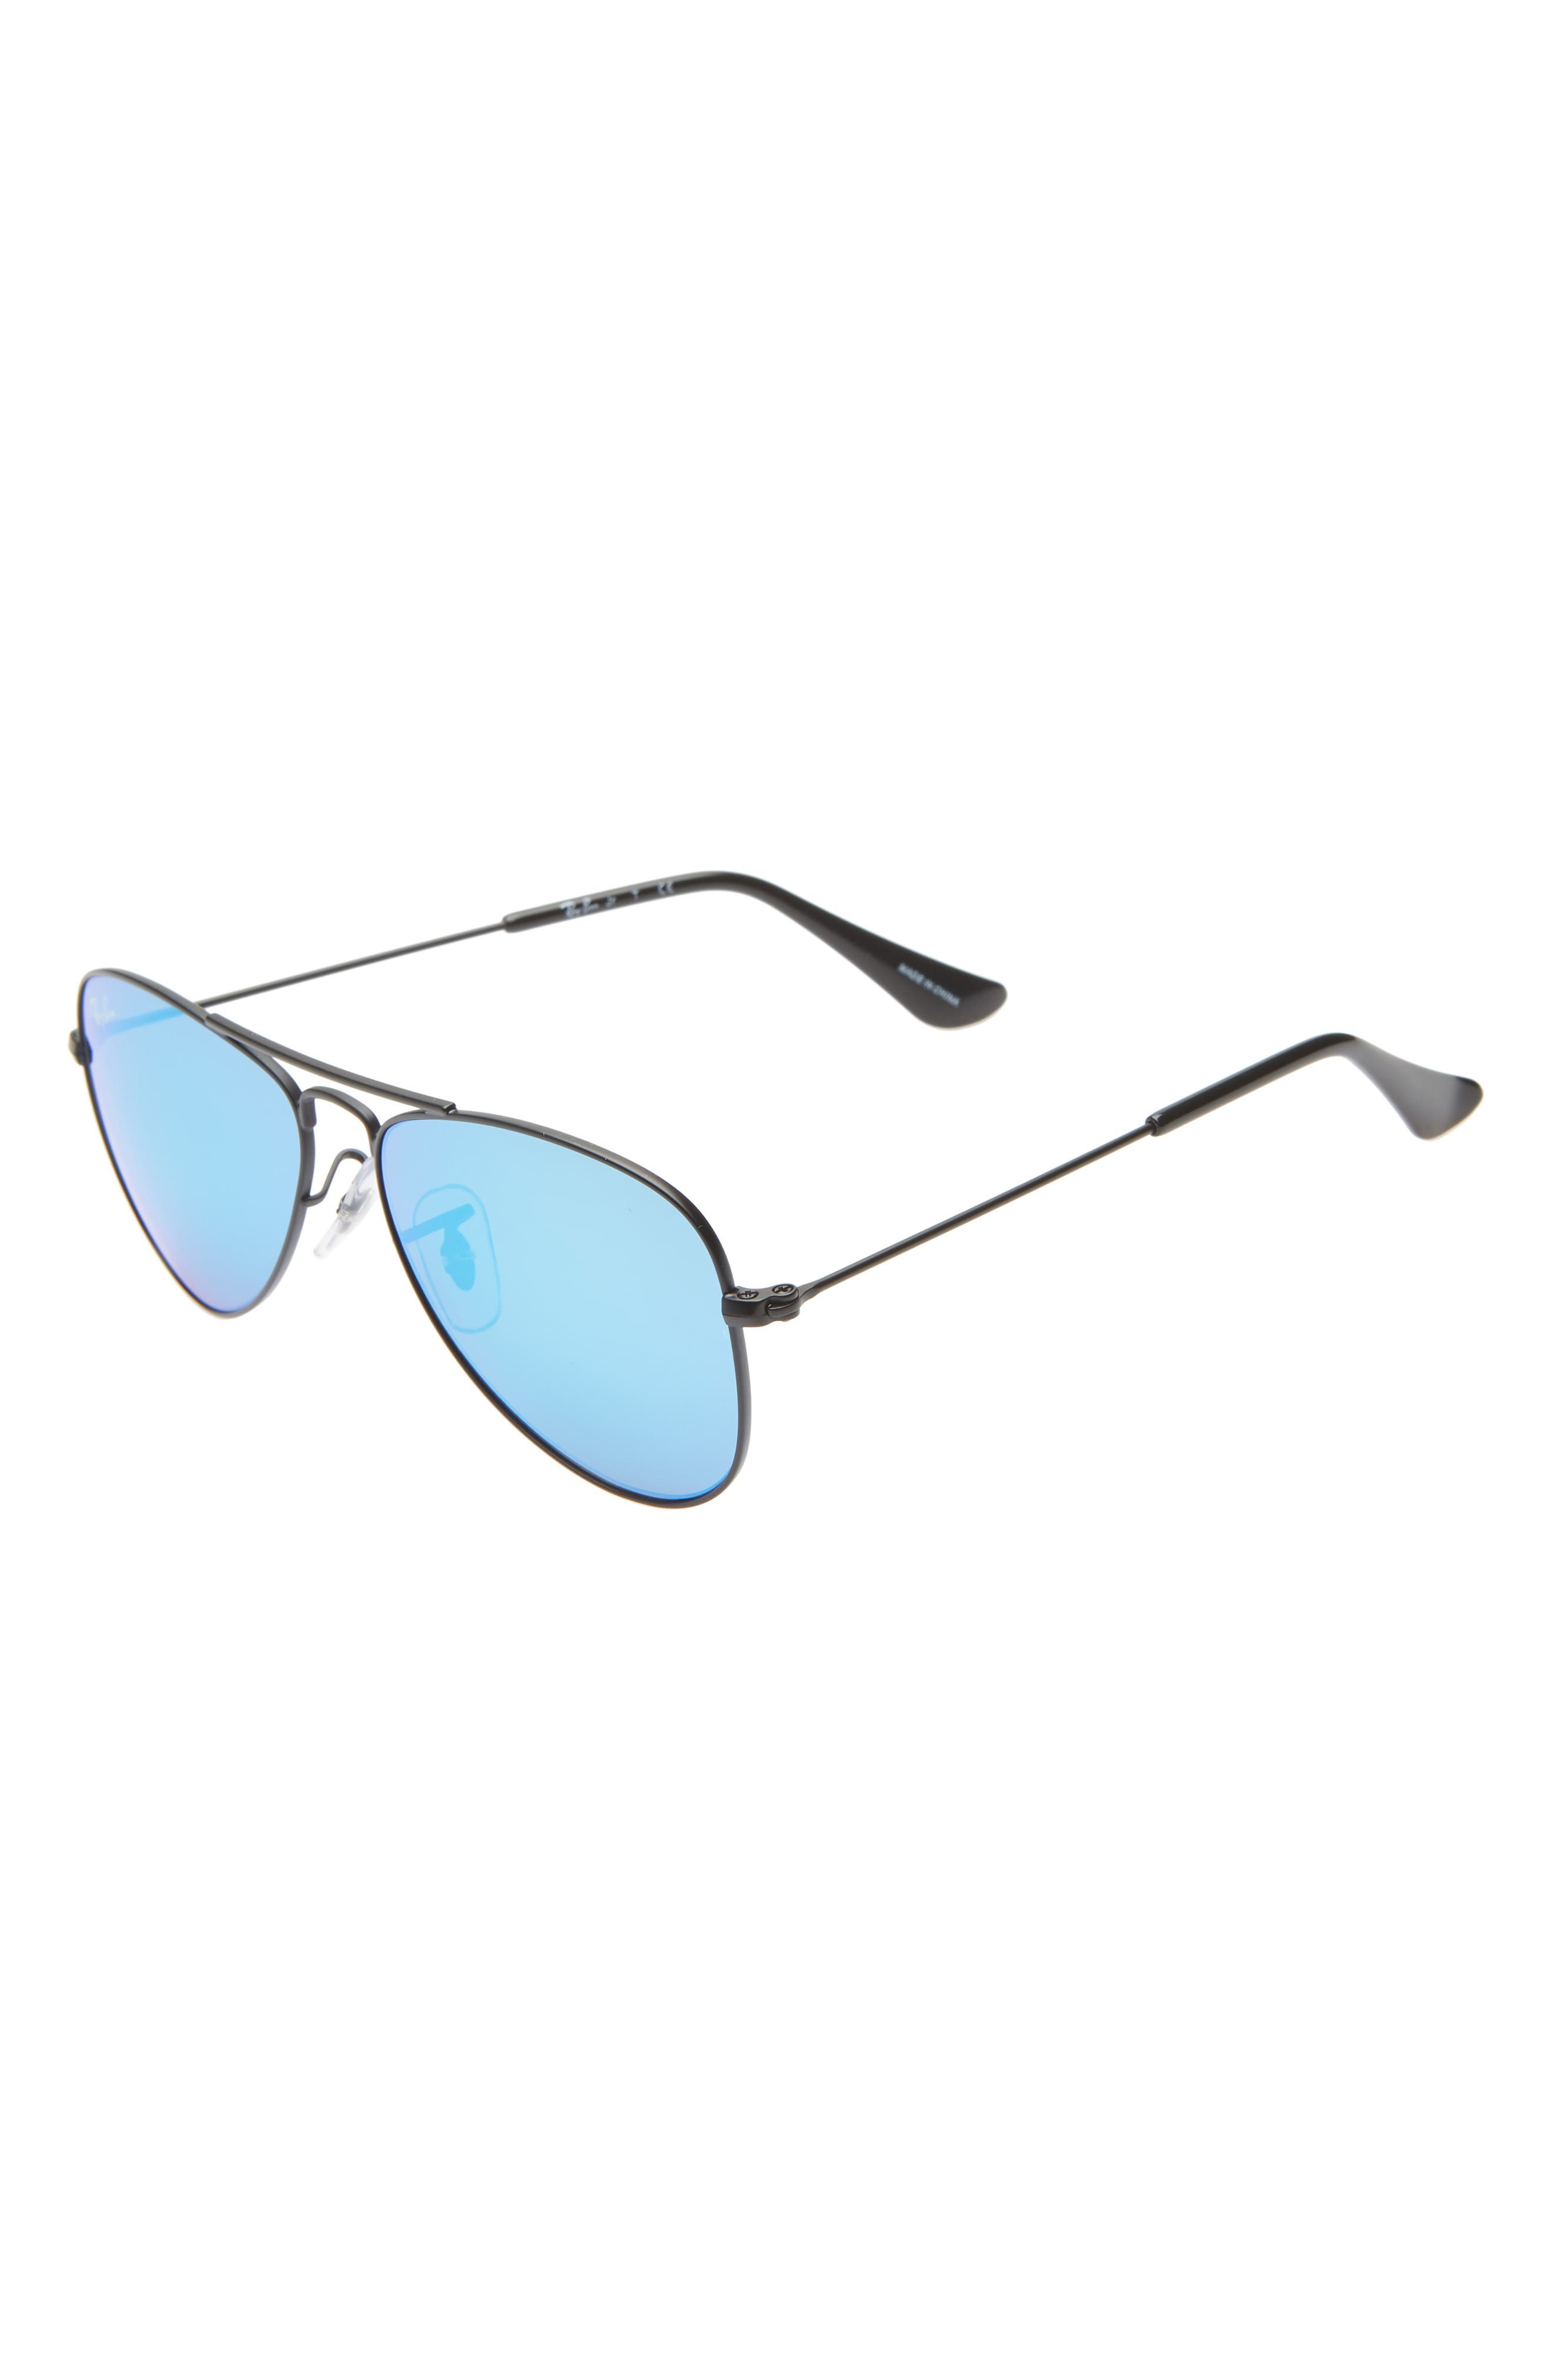 RayBan Junior 50Mm Mirrored Aviator Sunglasses